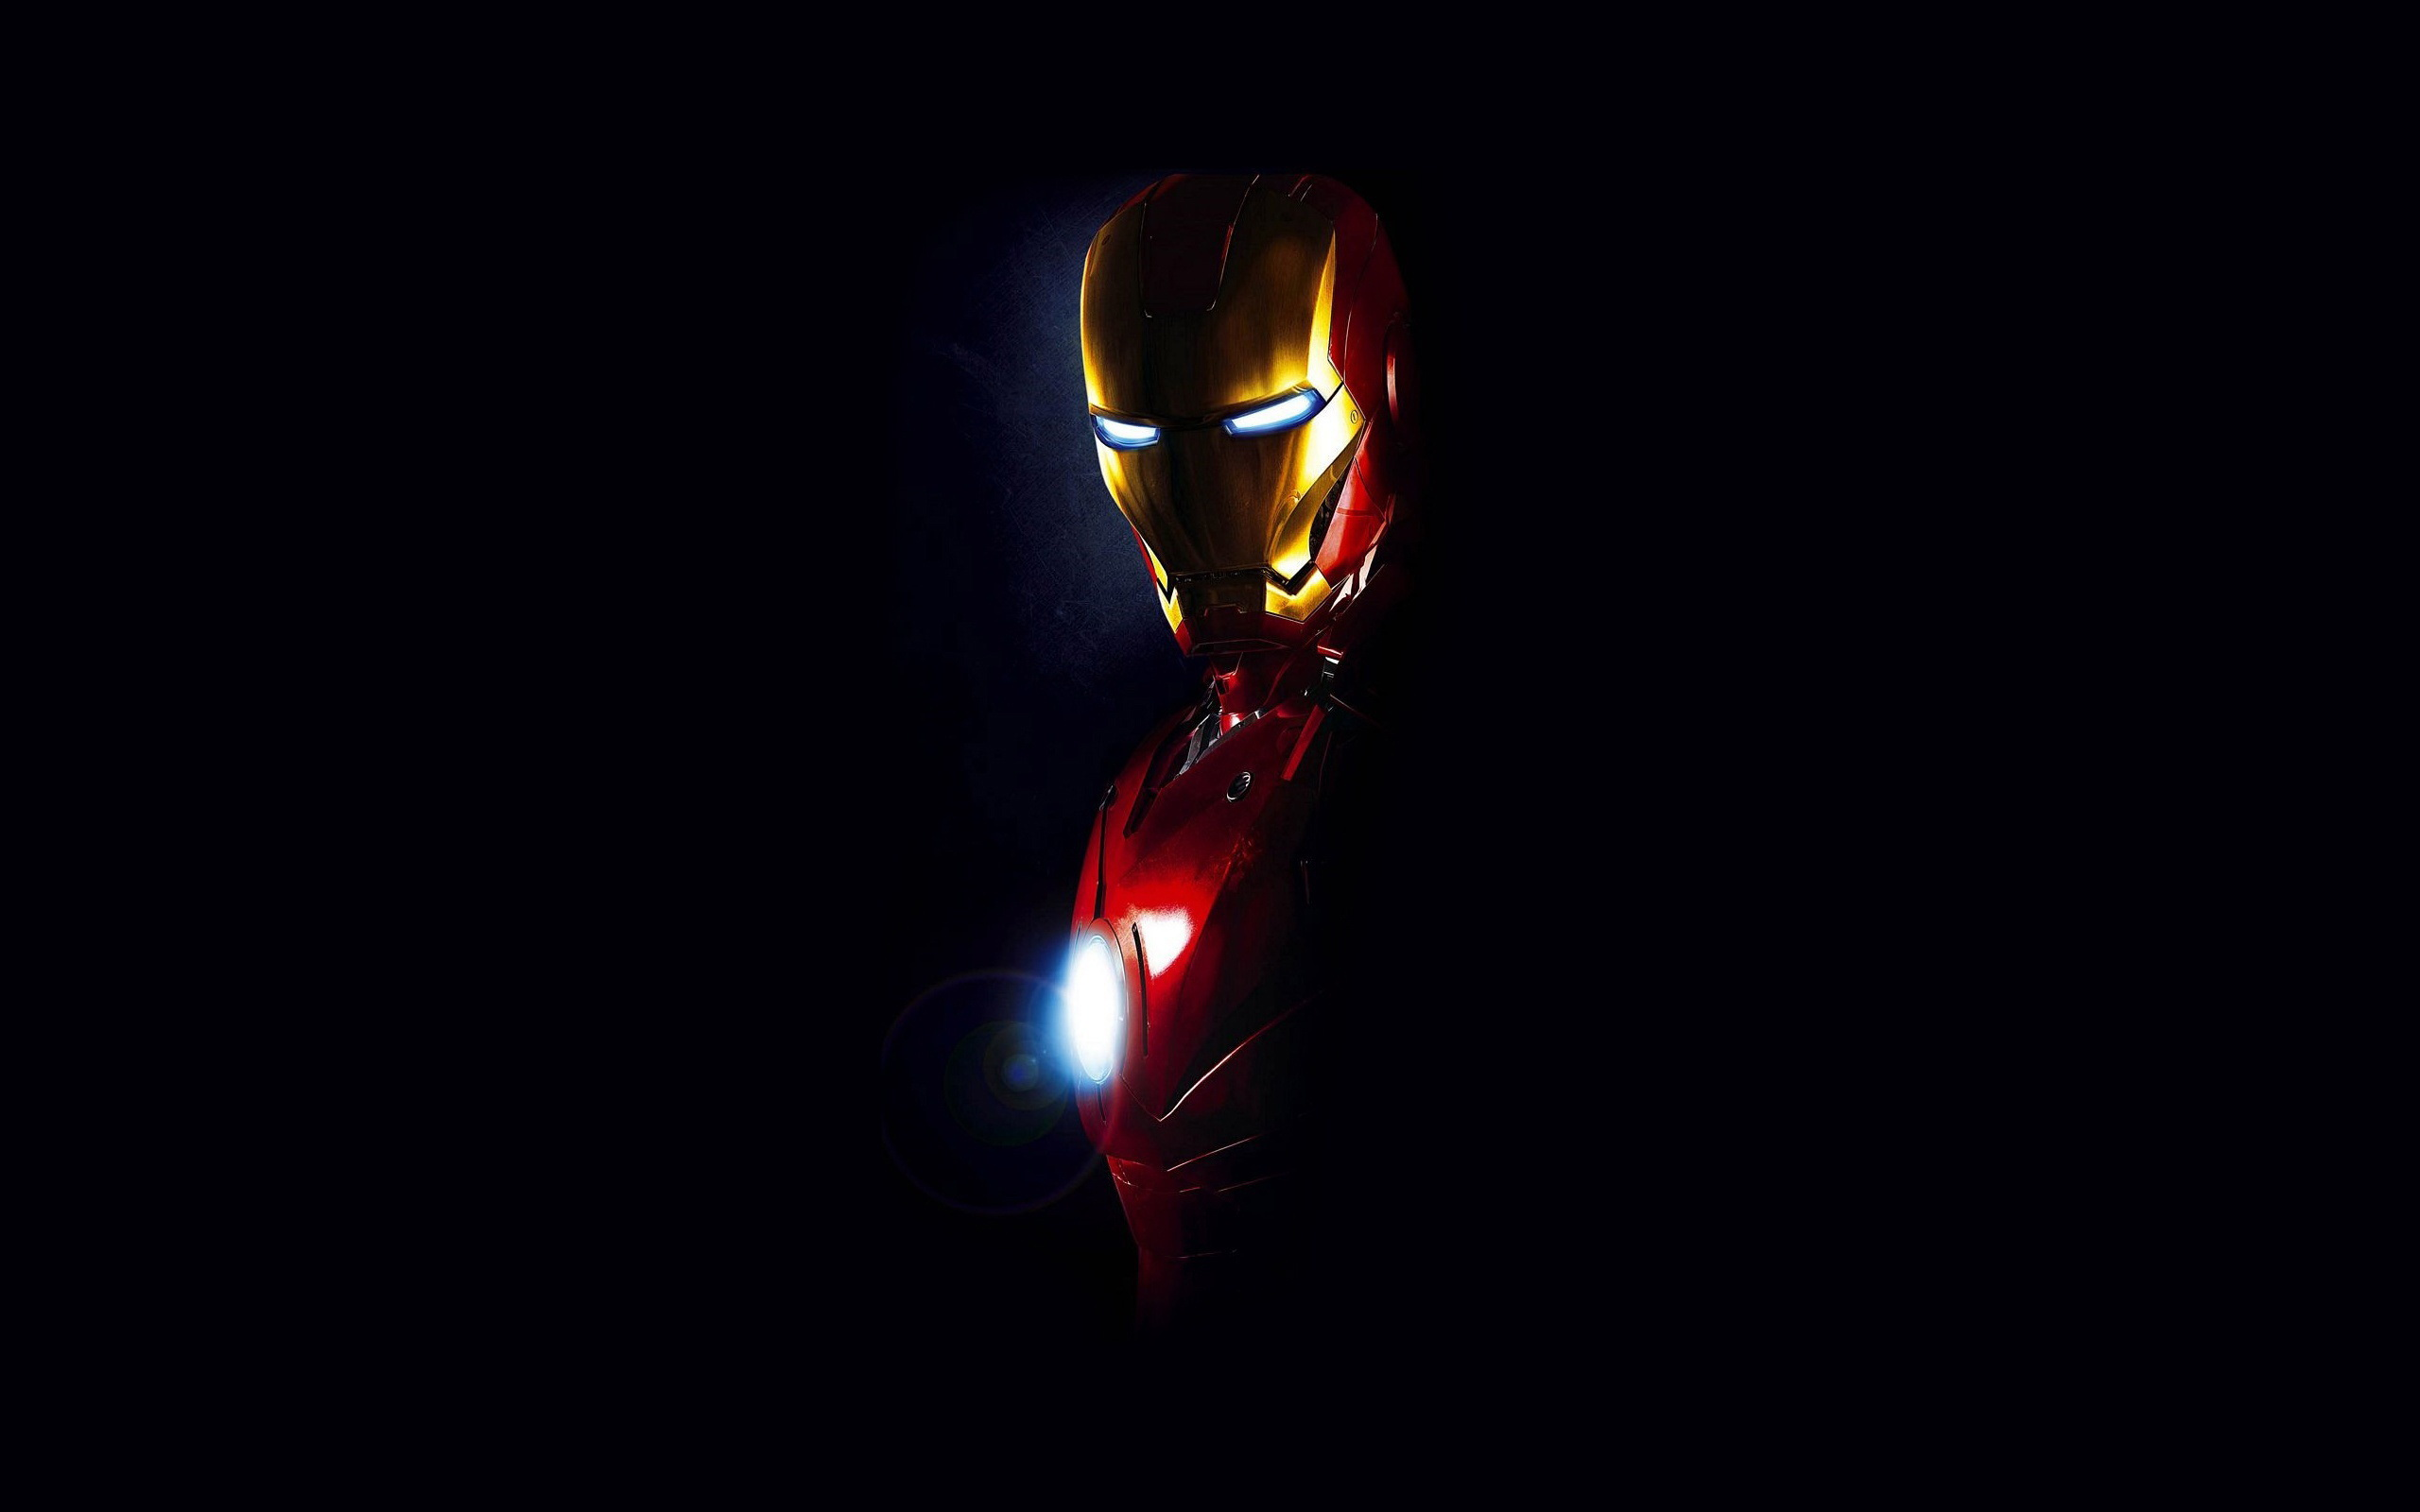 Iron Man Hd Wallpaper Background Image 2560x1600 Id 352134